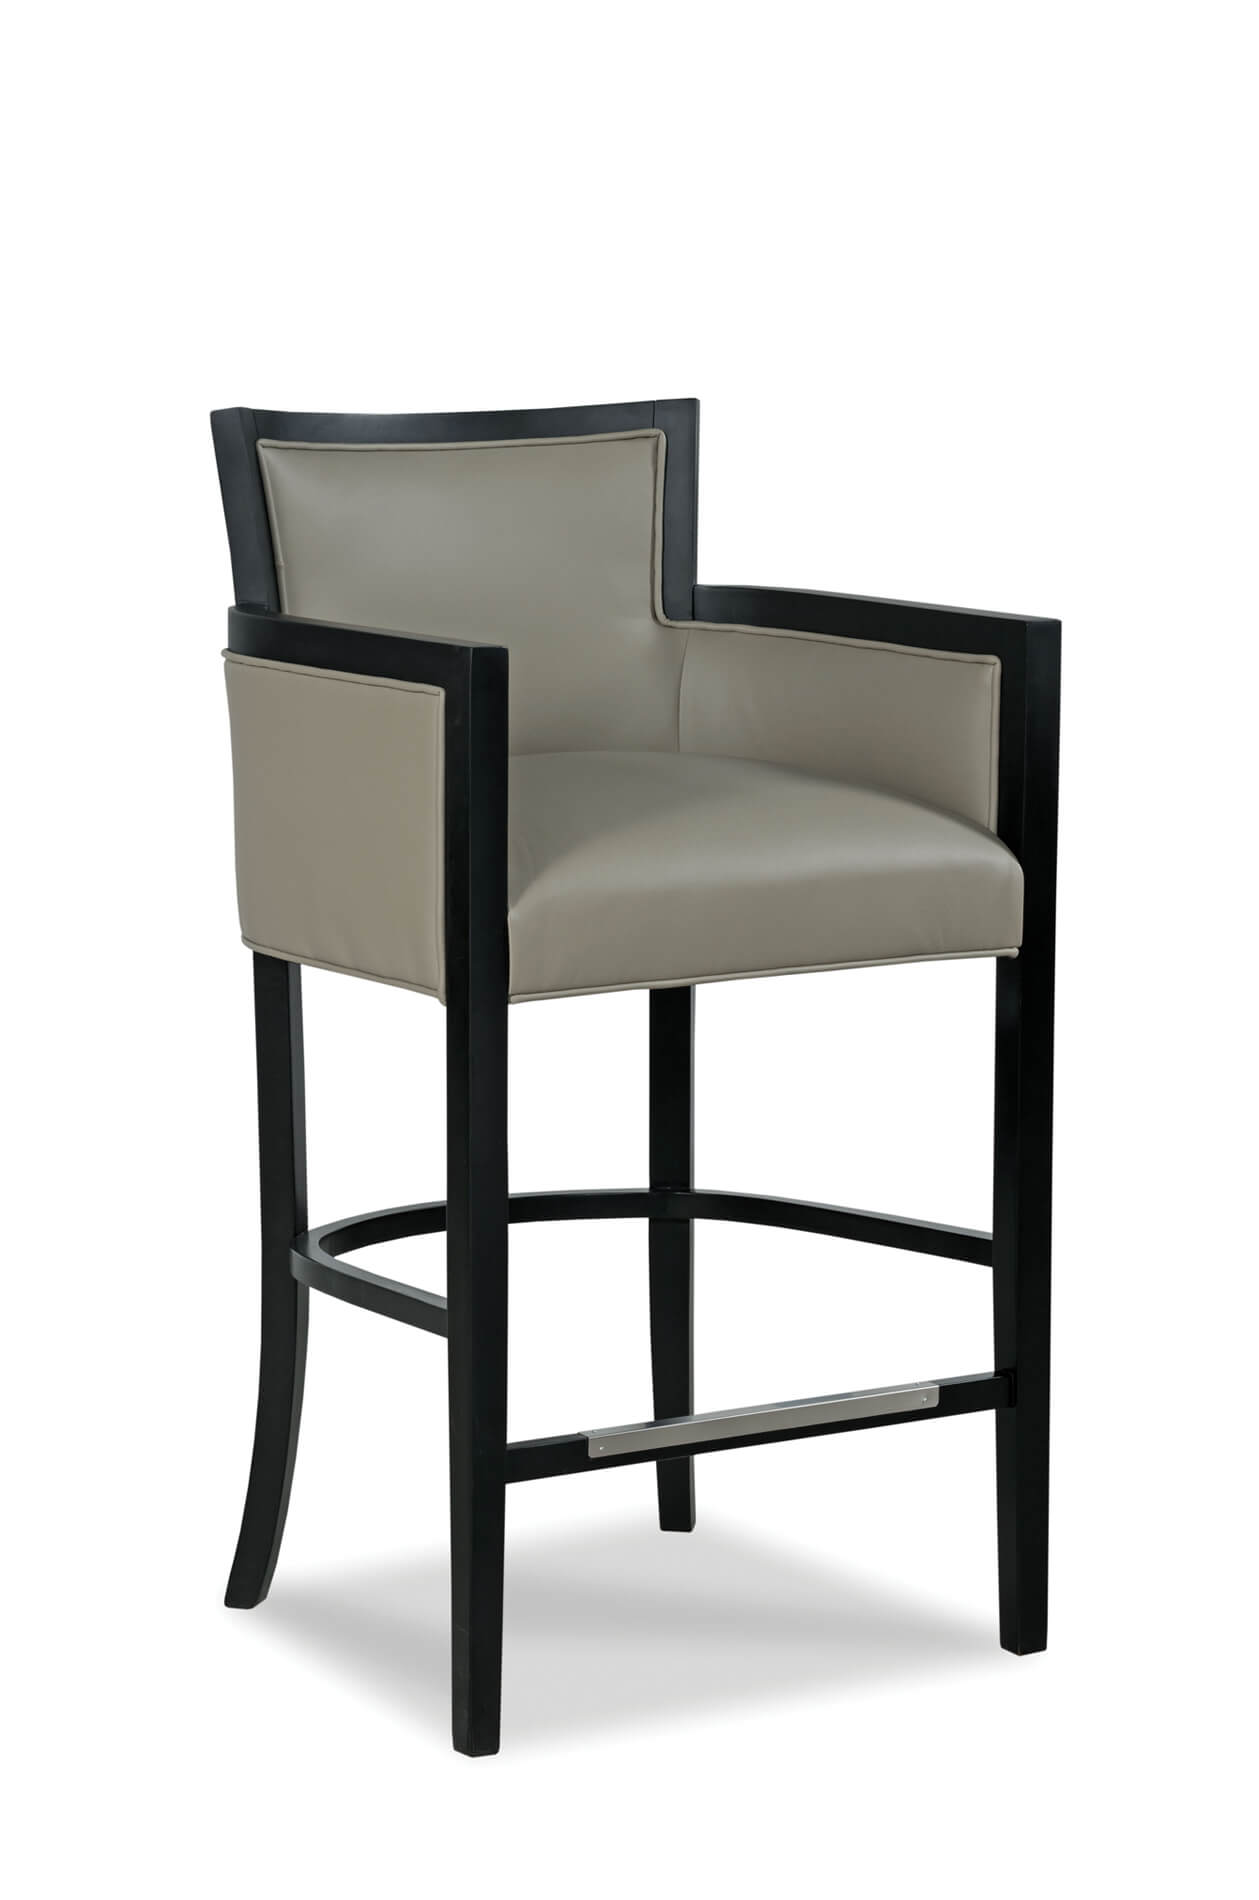 Merveilleux Fairfieldu0027s Albany Wooden Bar Stool With Arms And ...